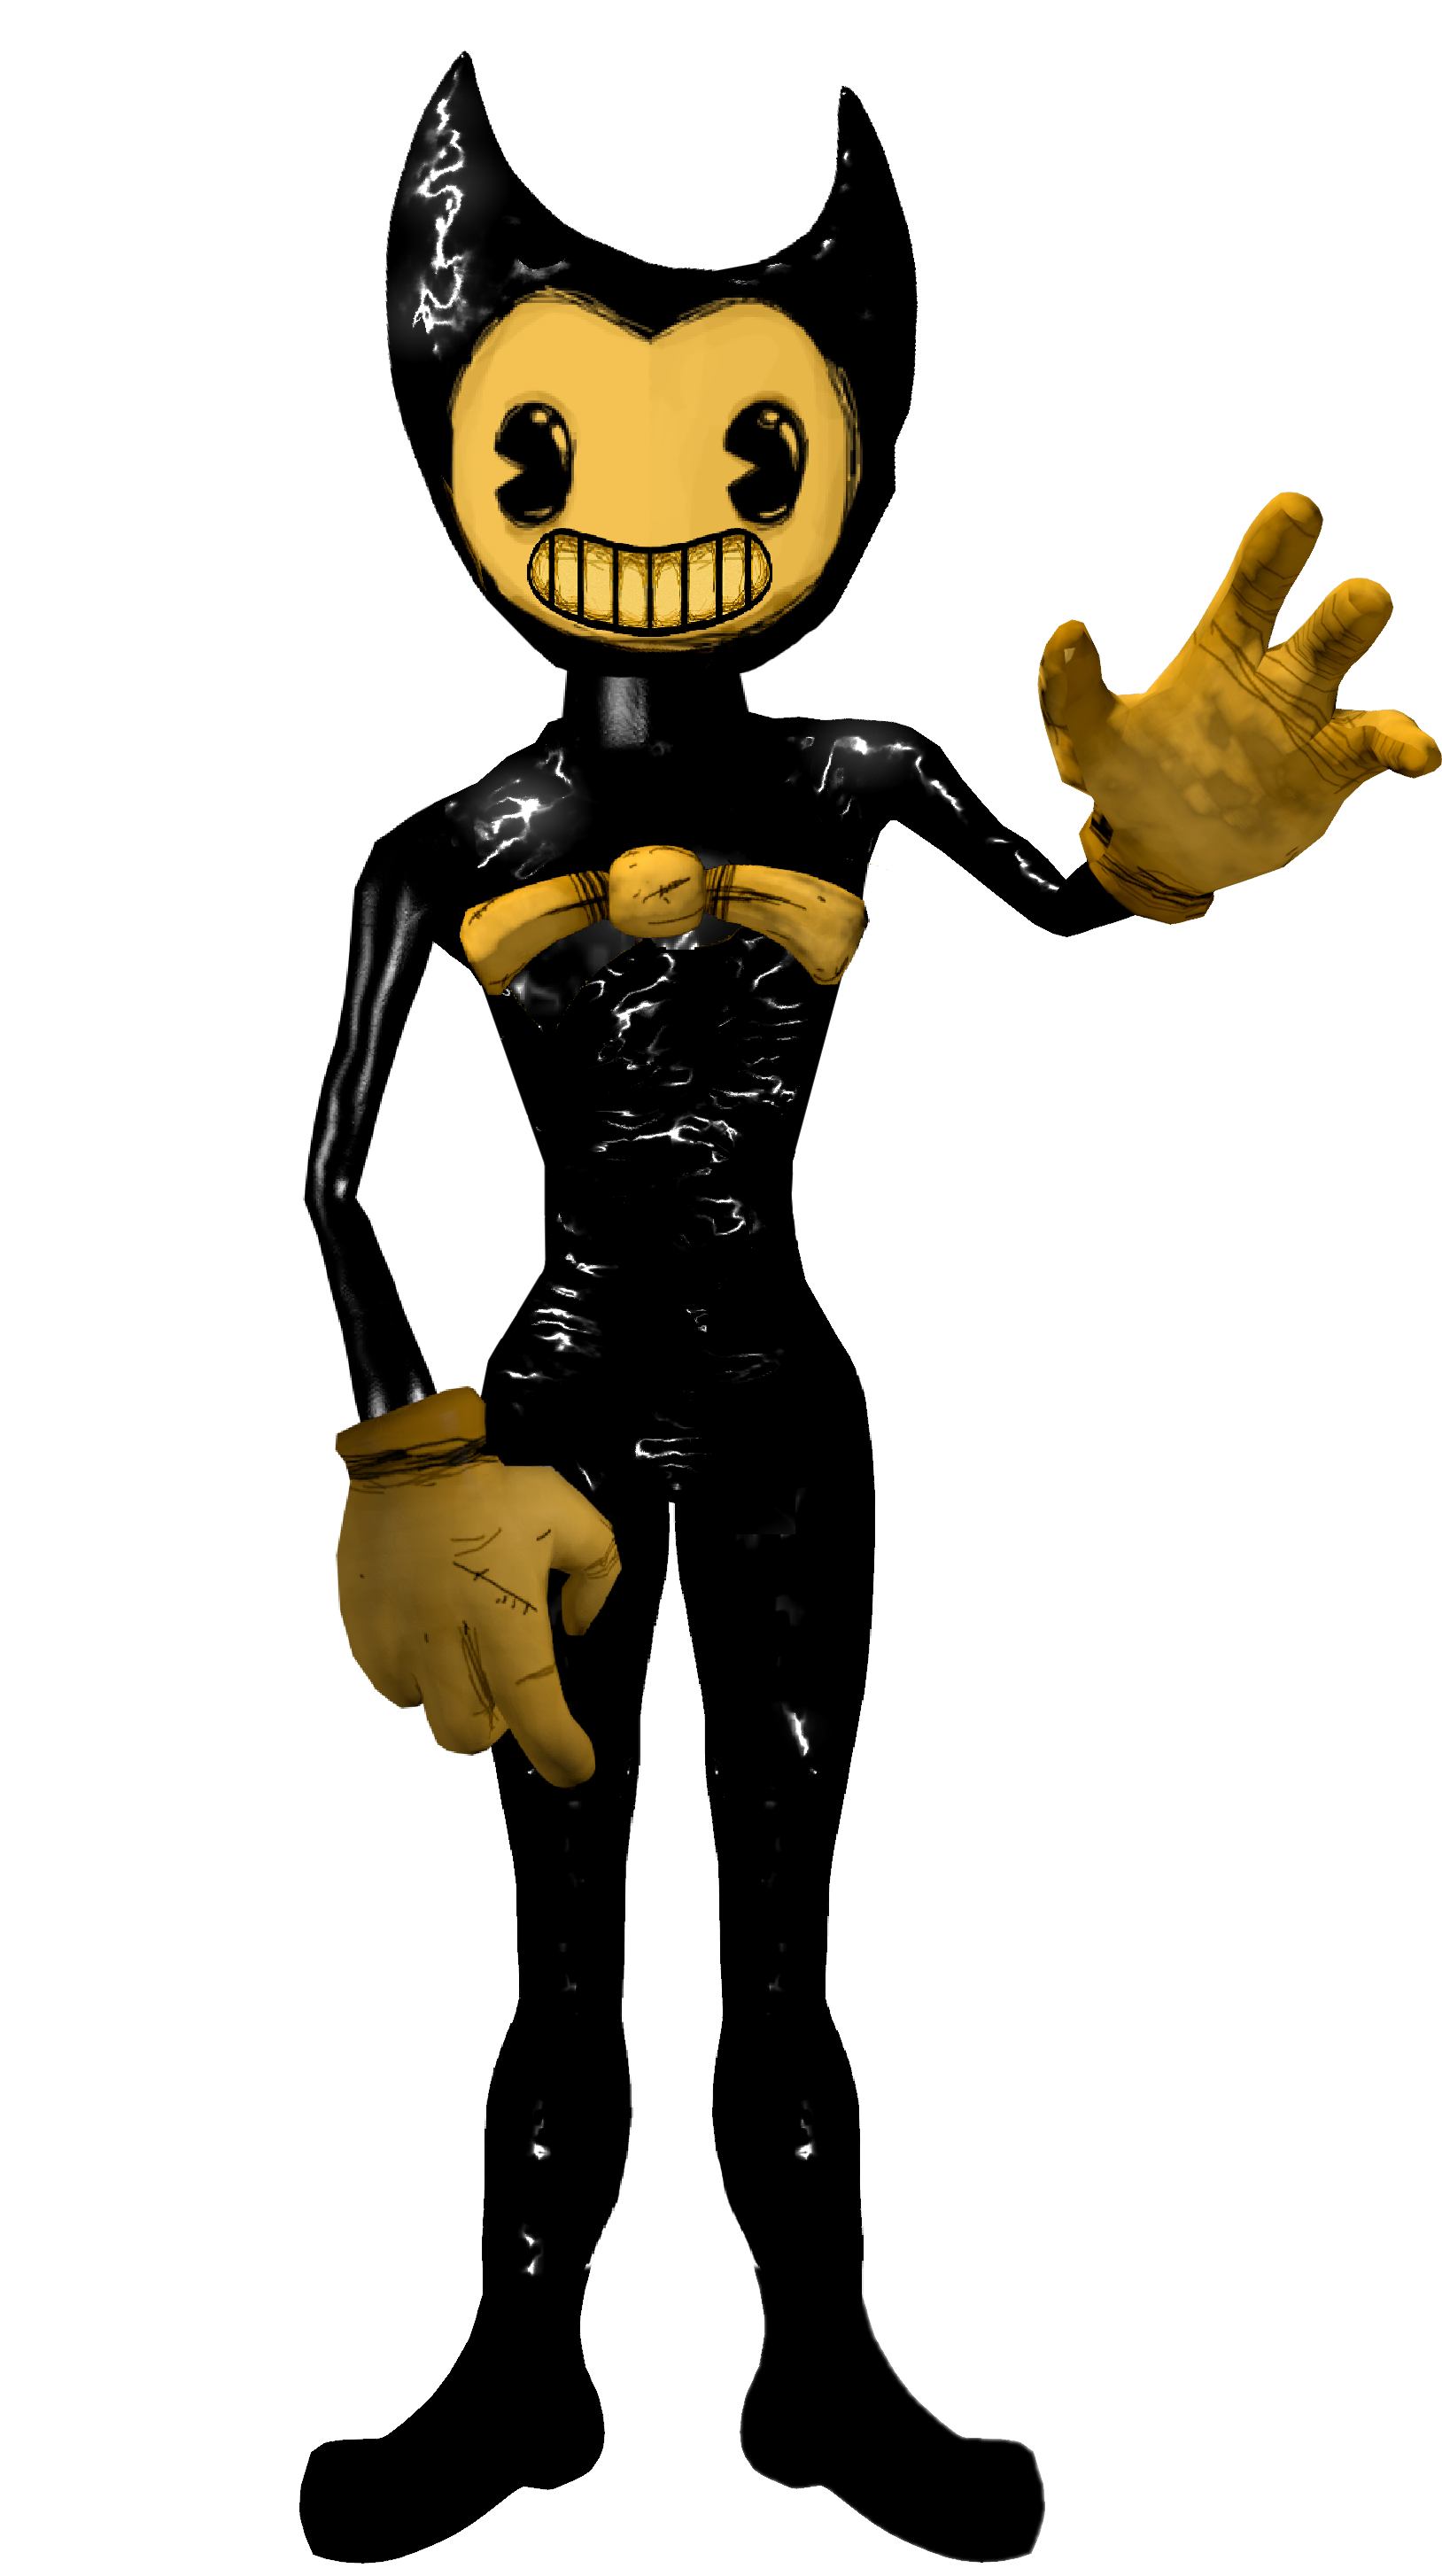 normal bendy bendy and the ink machine custom wiki